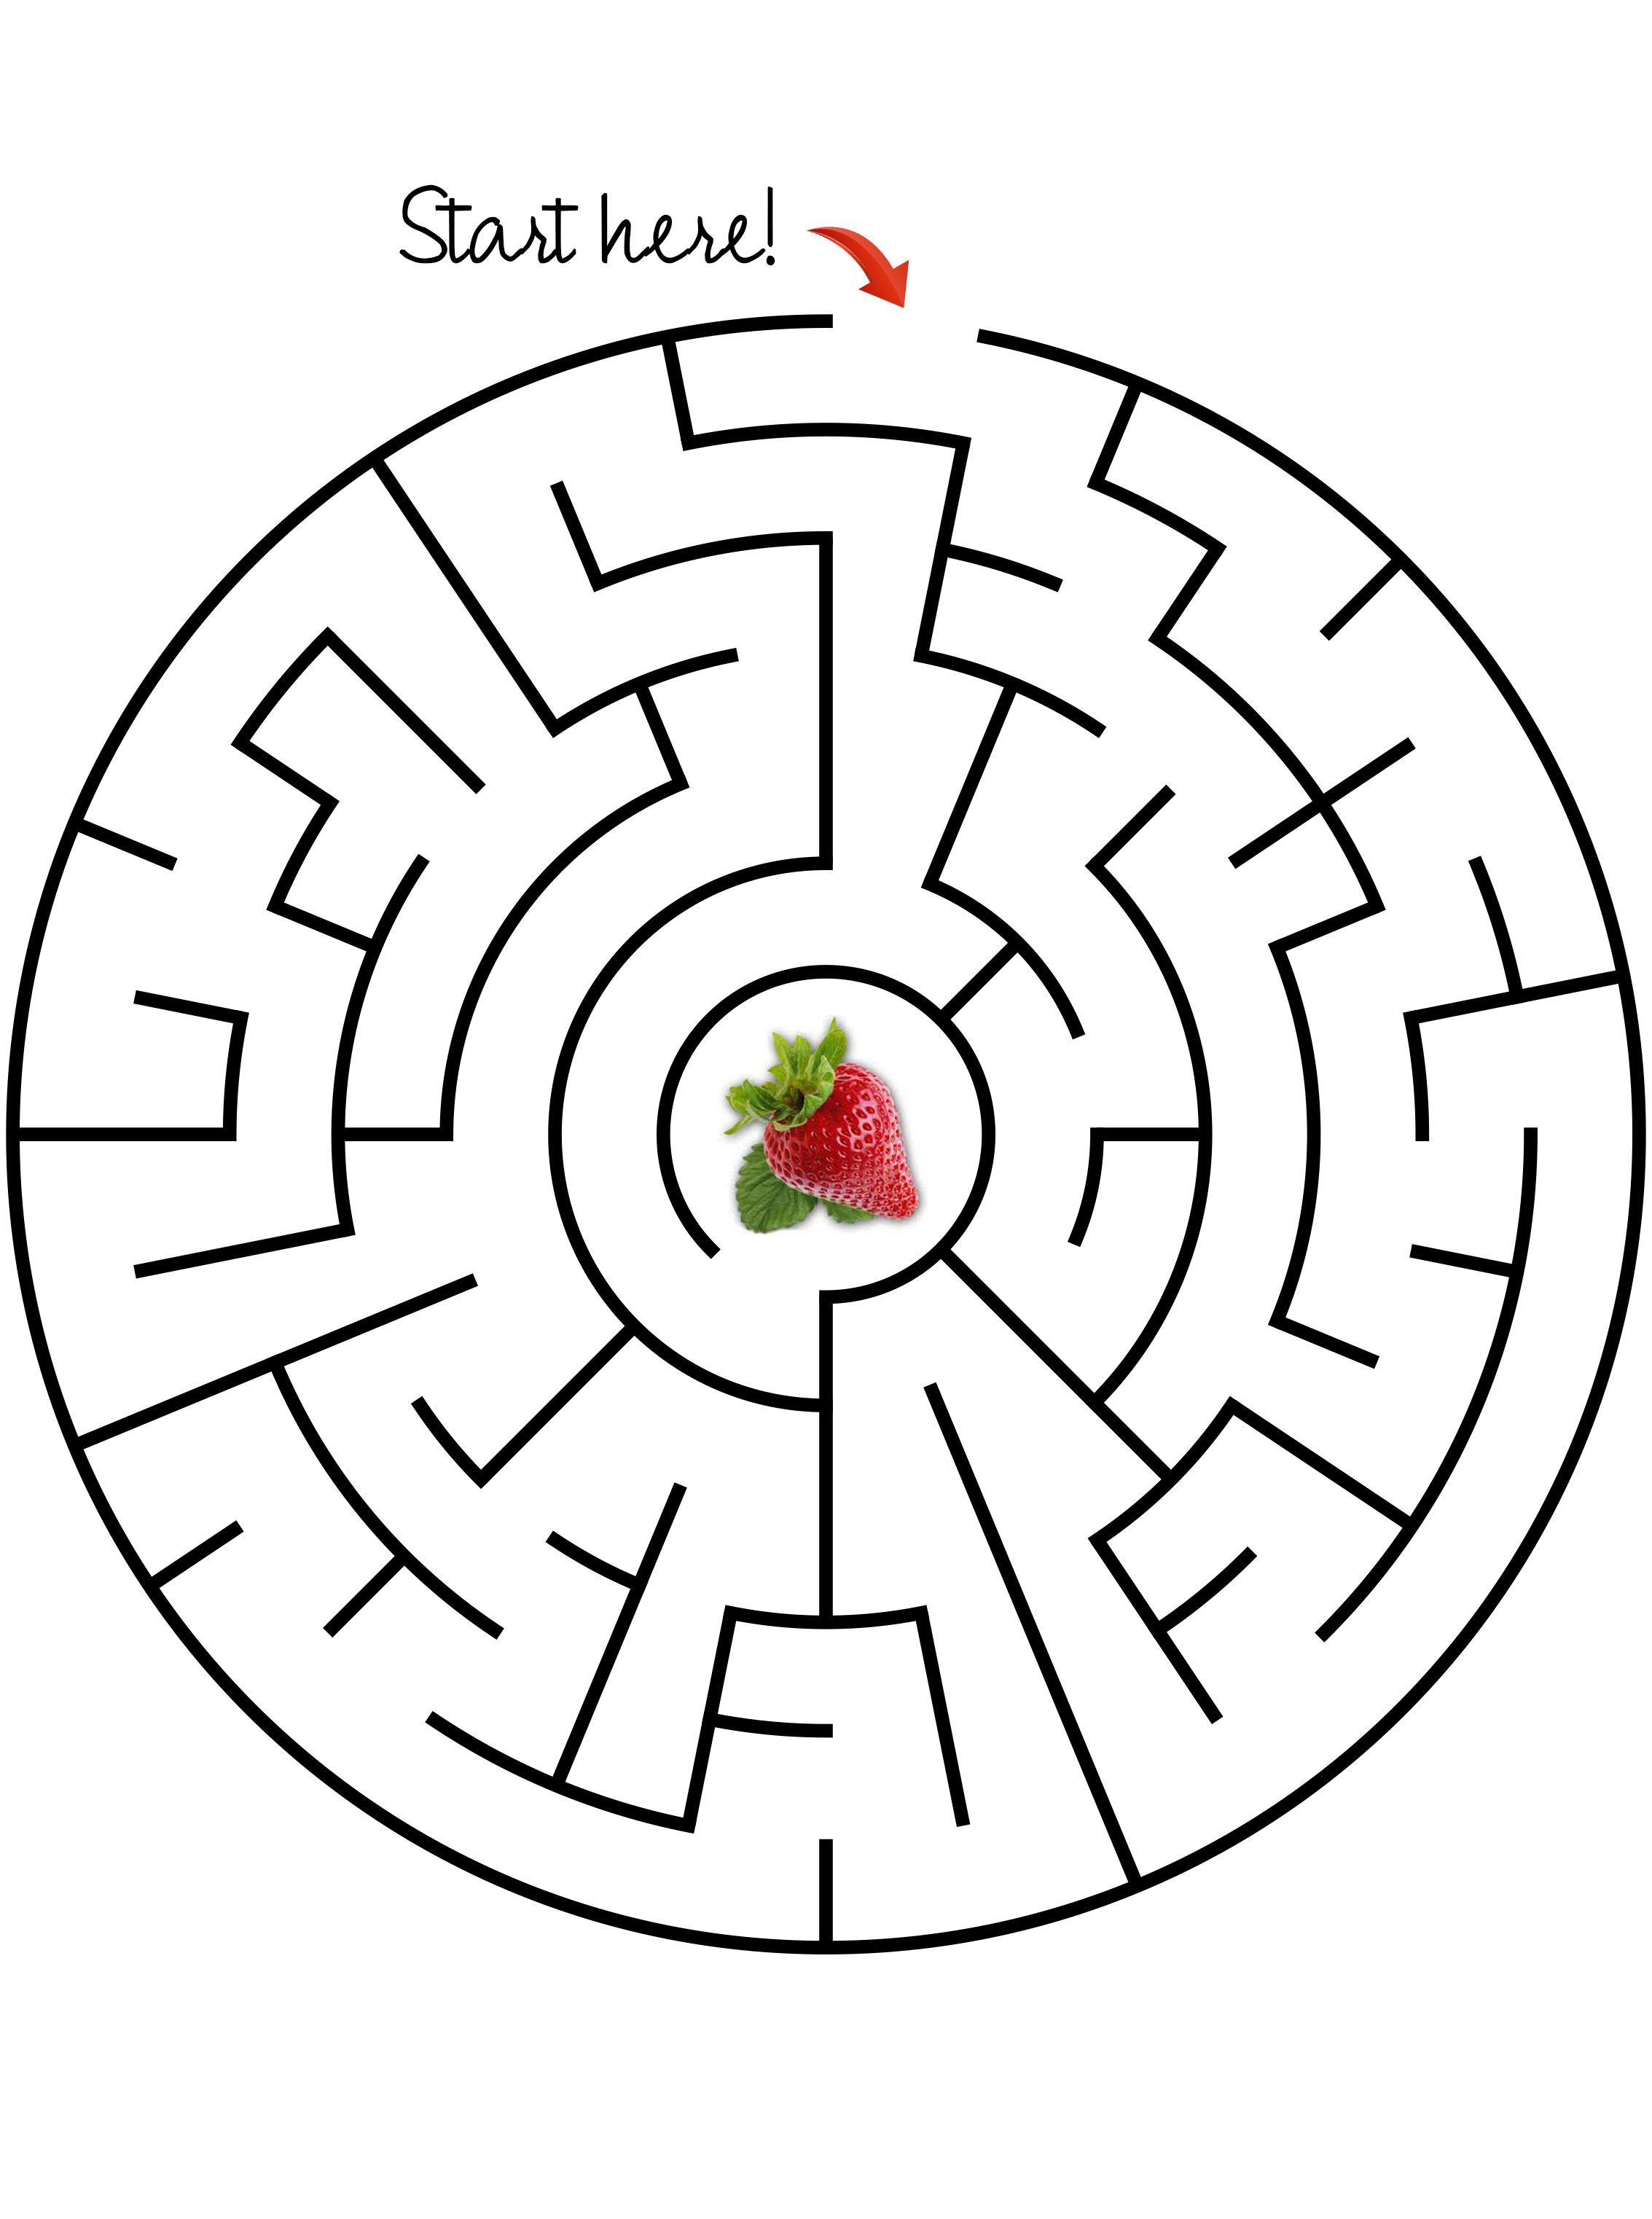 Maze Get The Strawberry Easy